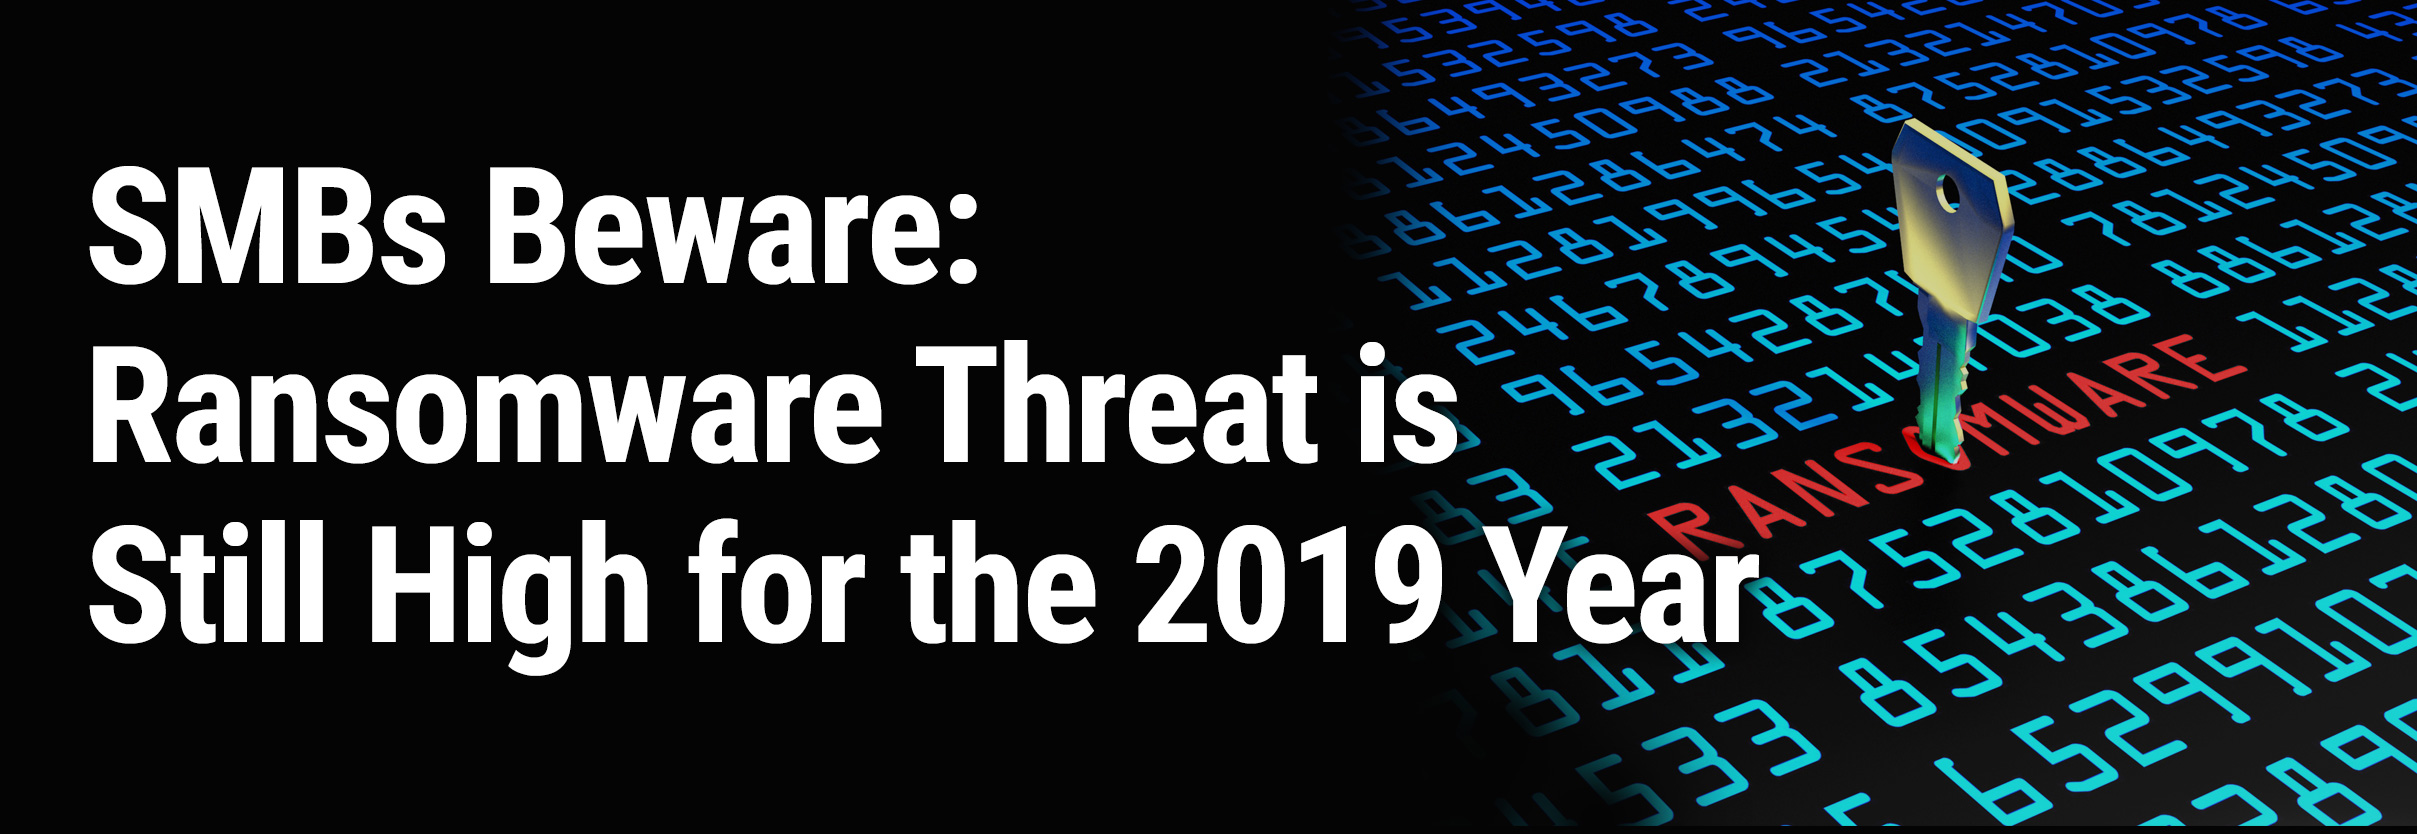 SMBs Beware: Ransomware Threat is Still High for the 2019 Year